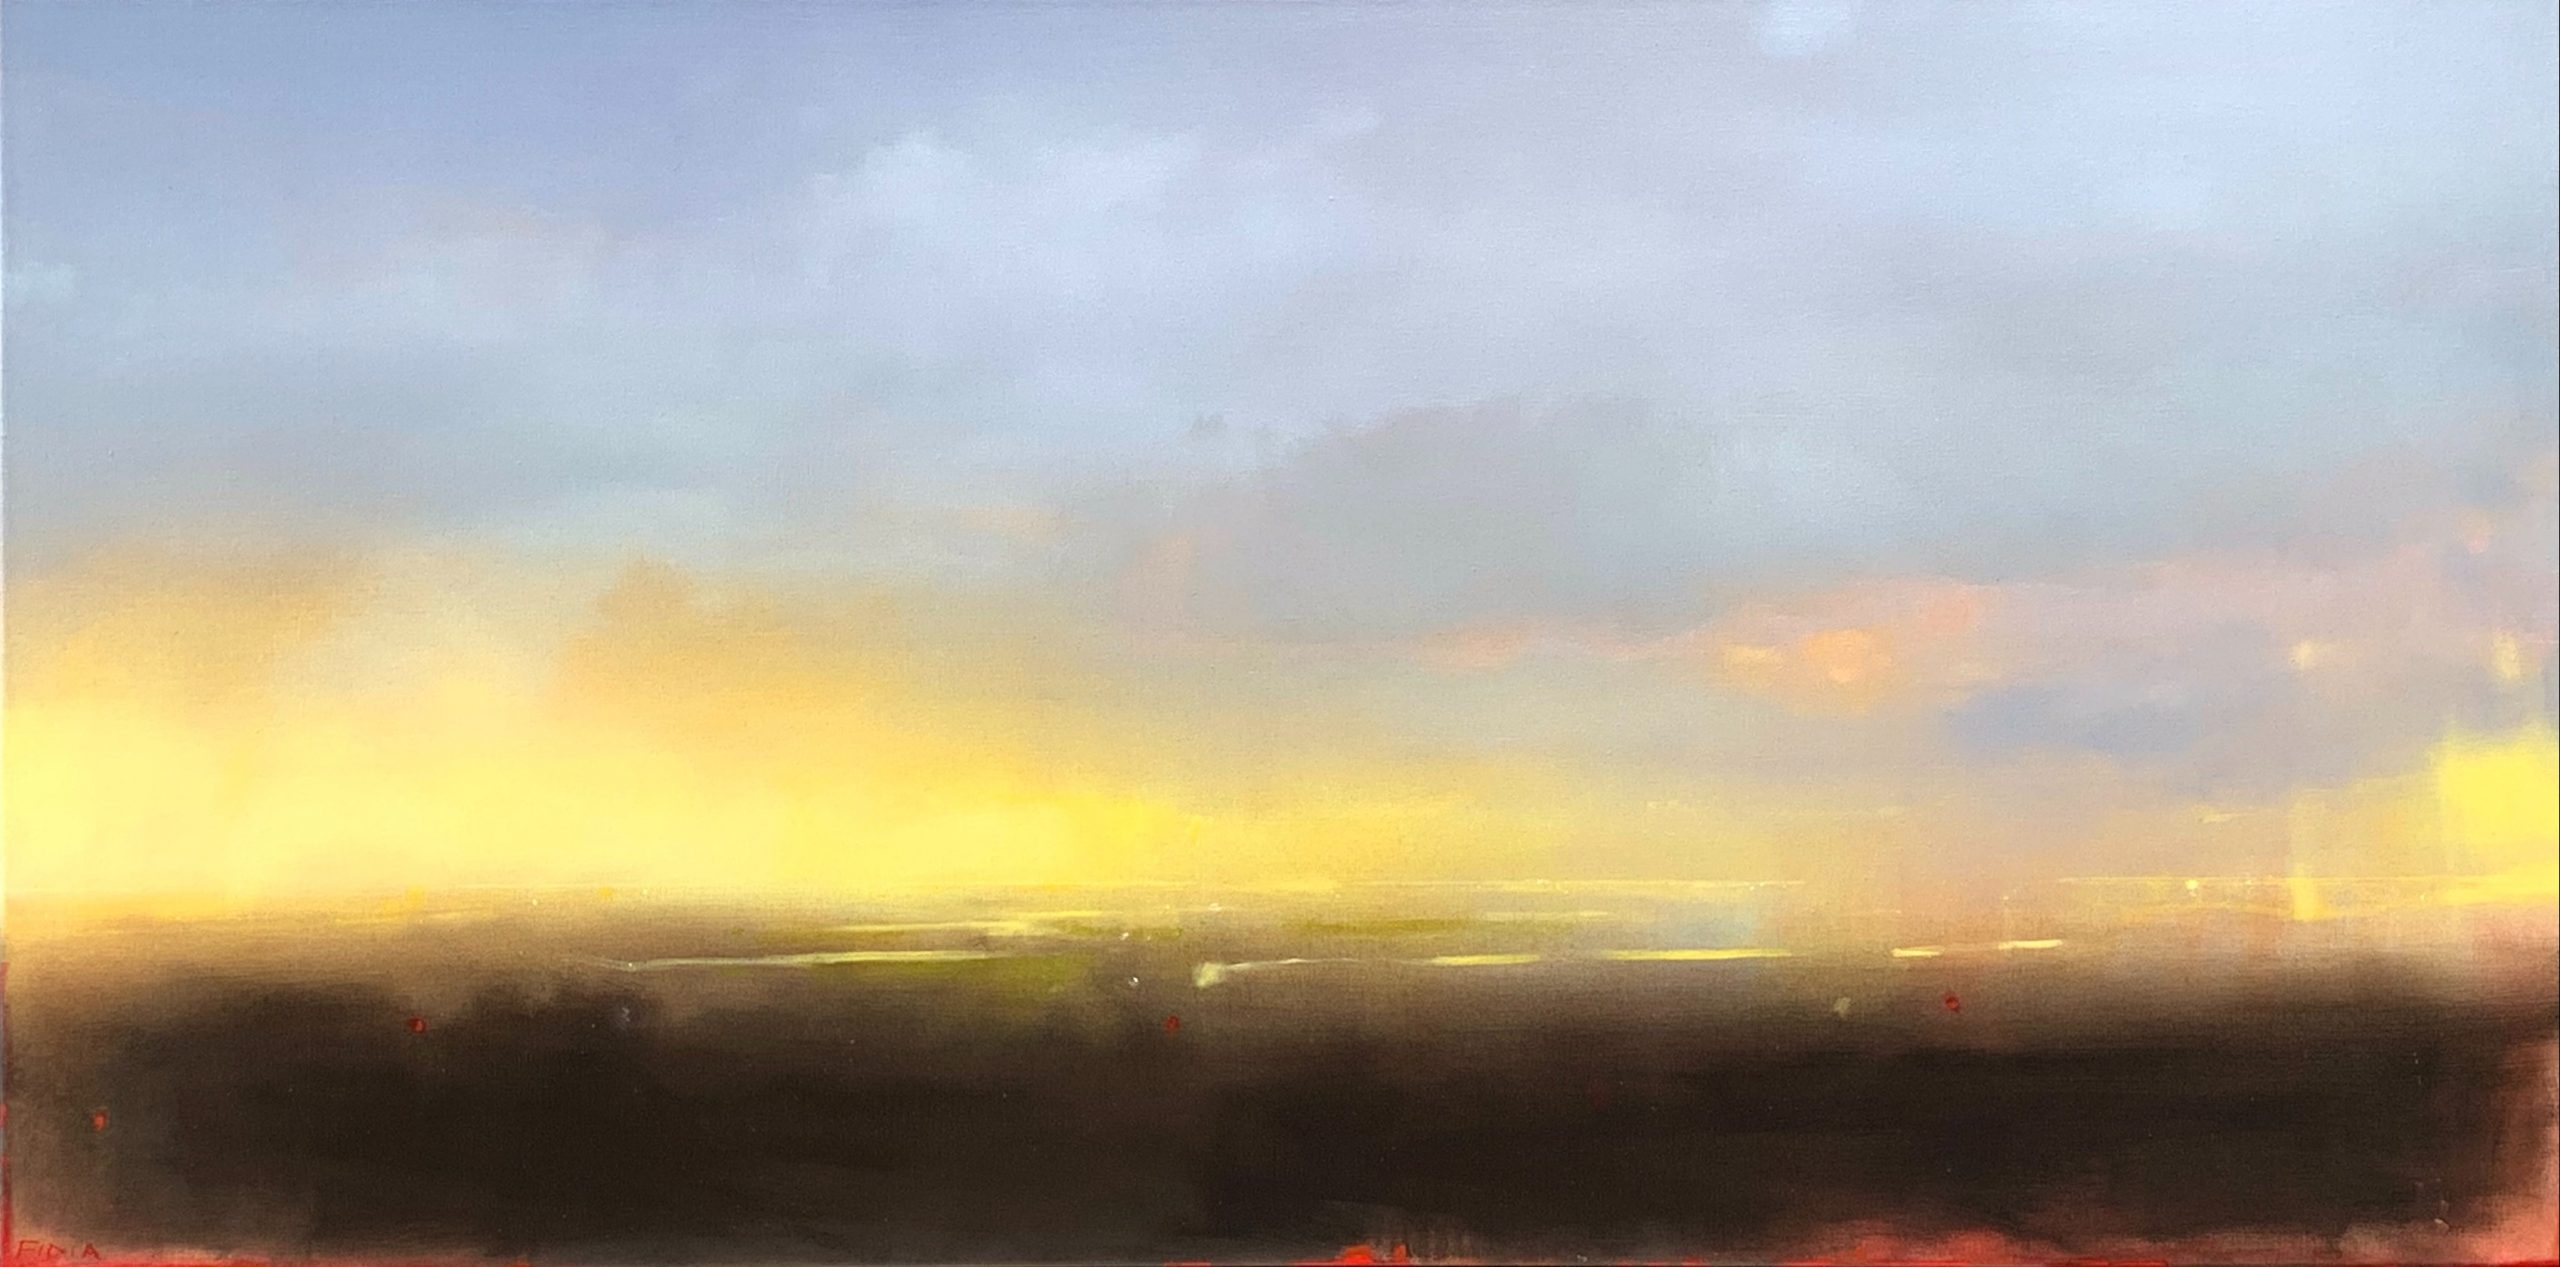 Morning Start, landscape and sky painting by Joe Fidia | Effusion Art Gallery + Cast Glass Studio, Invermere BC